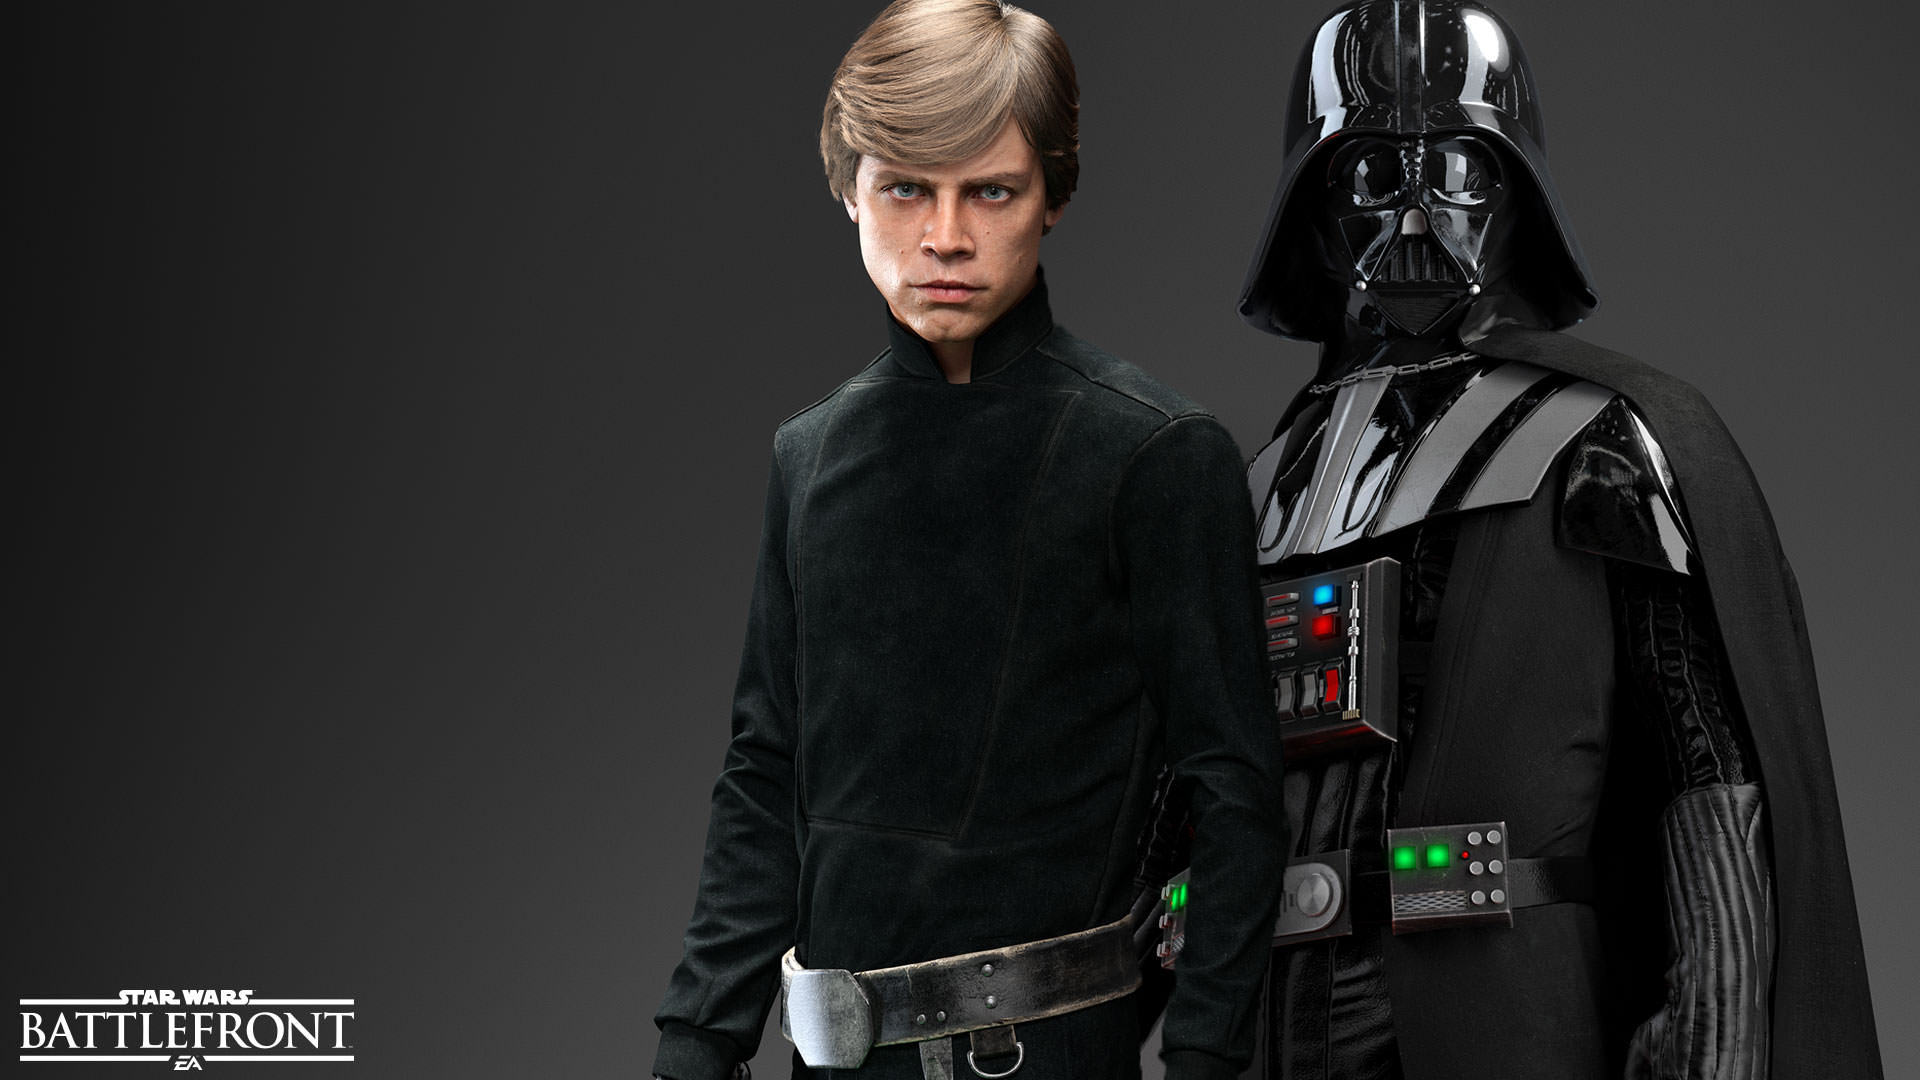 heroes vs villains: the clash of iconic star wars characters - star